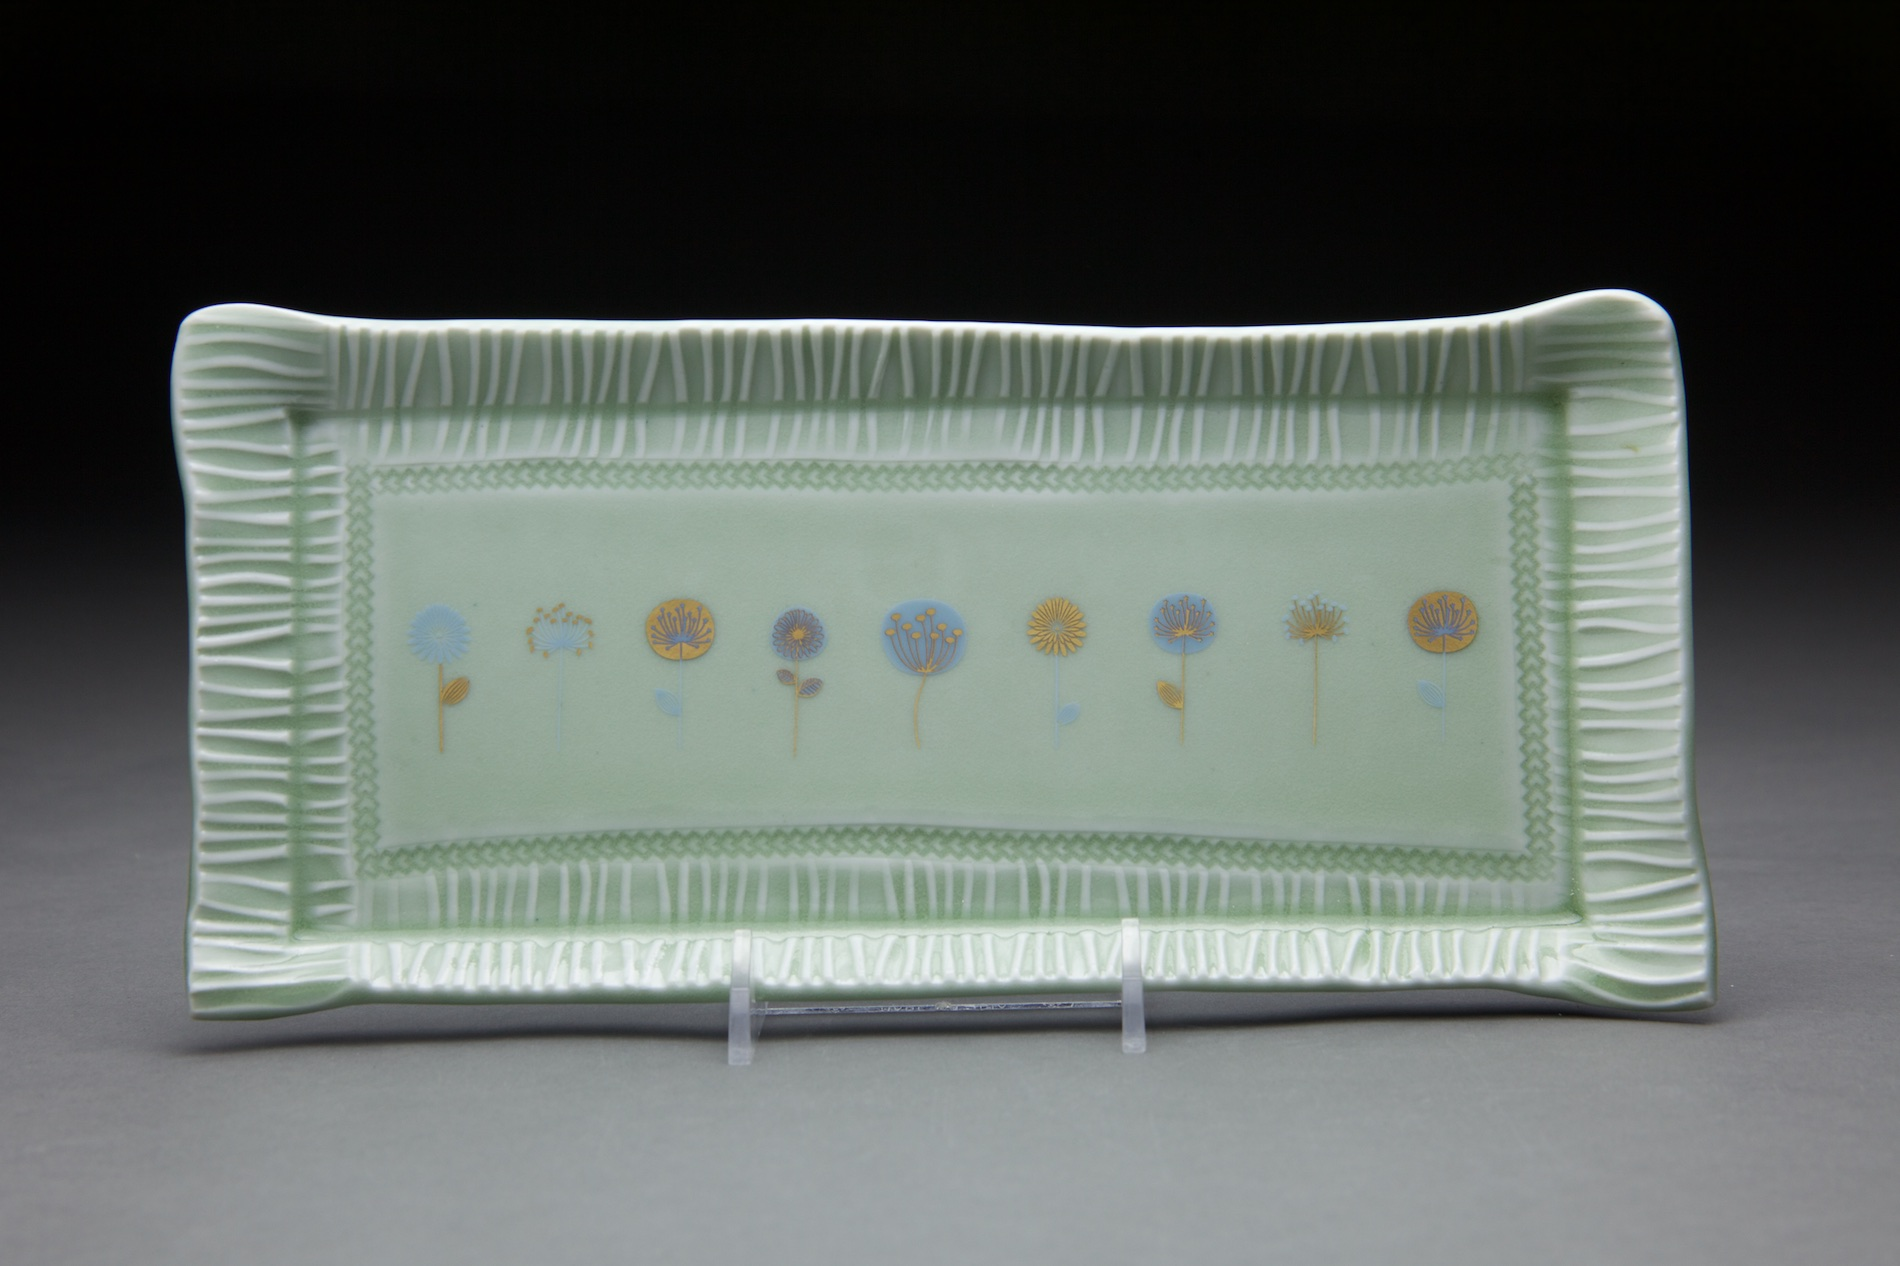 4x10 in light sage glaze. with gold decals